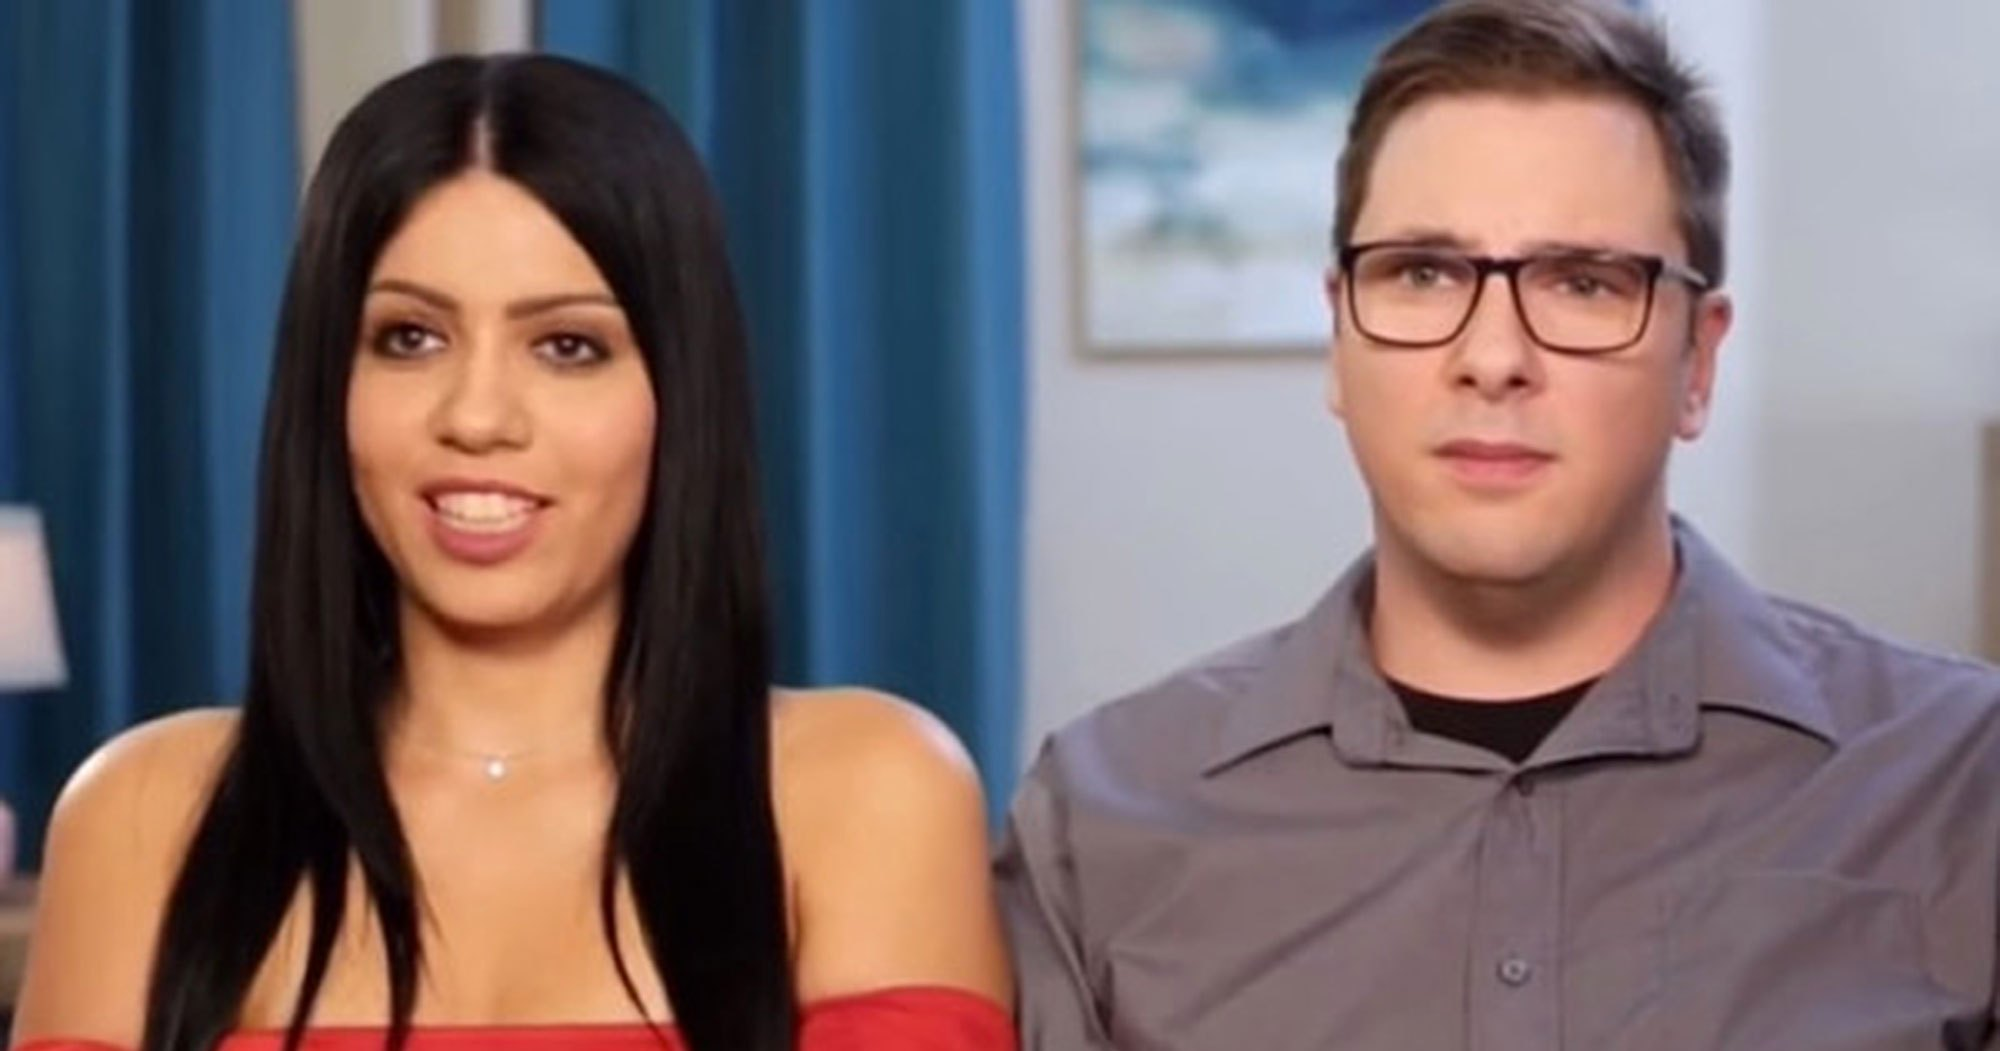 90 Day Fiance's Larissa Dos Santos Lima Arrested for Domestic Battery